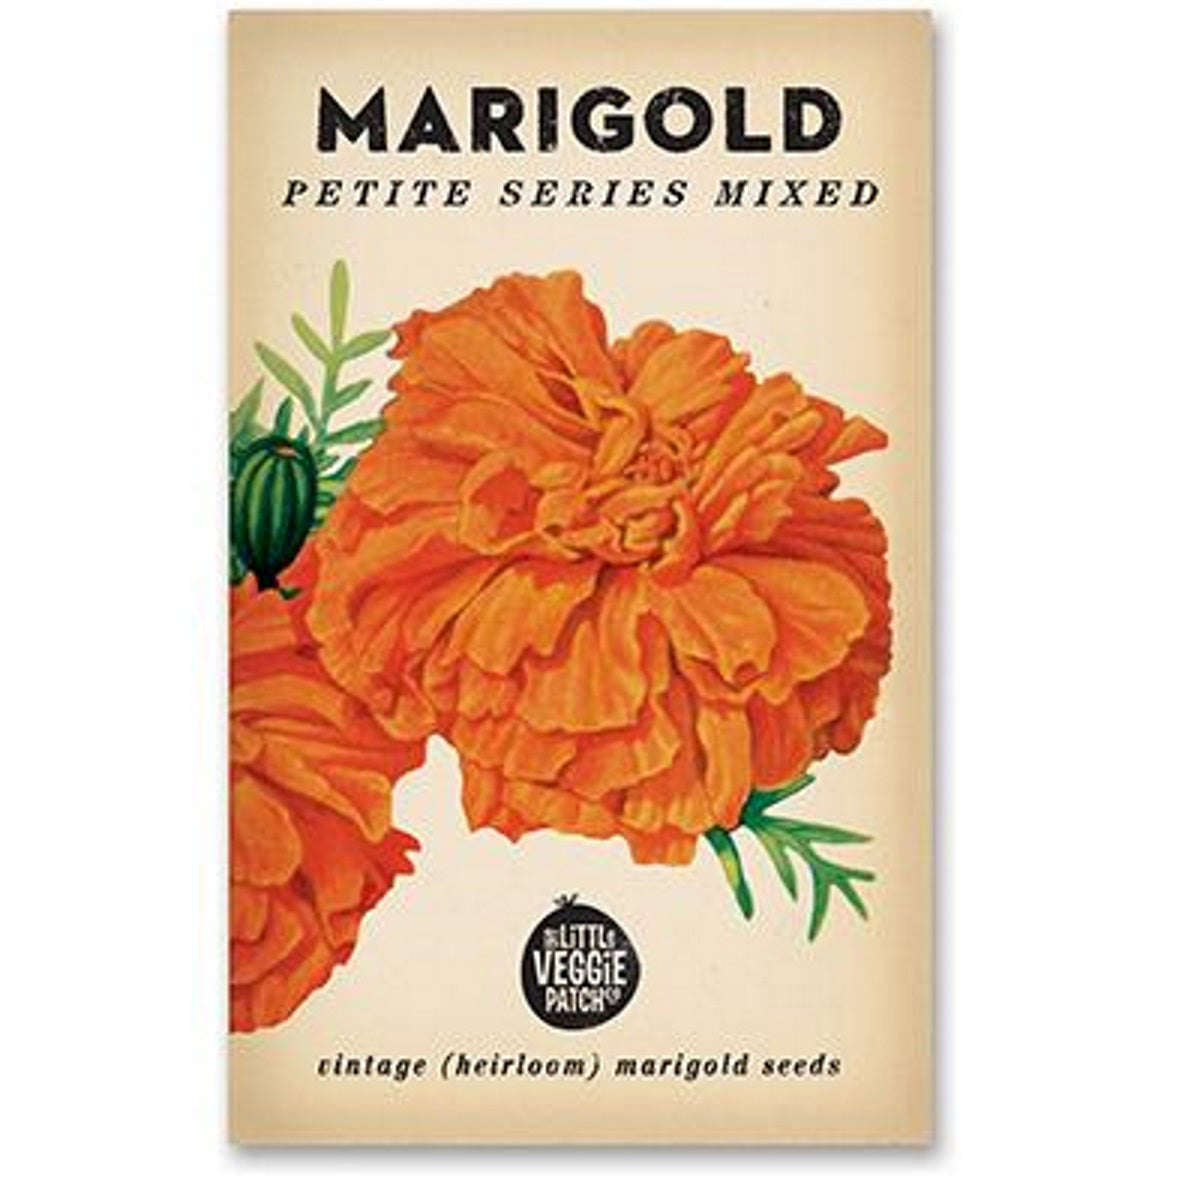 Marigold (Petite Series Mixed) Heirloom Seeds - Seeds - Throw Some Seeds - Australian gardening gifts and eco products online!